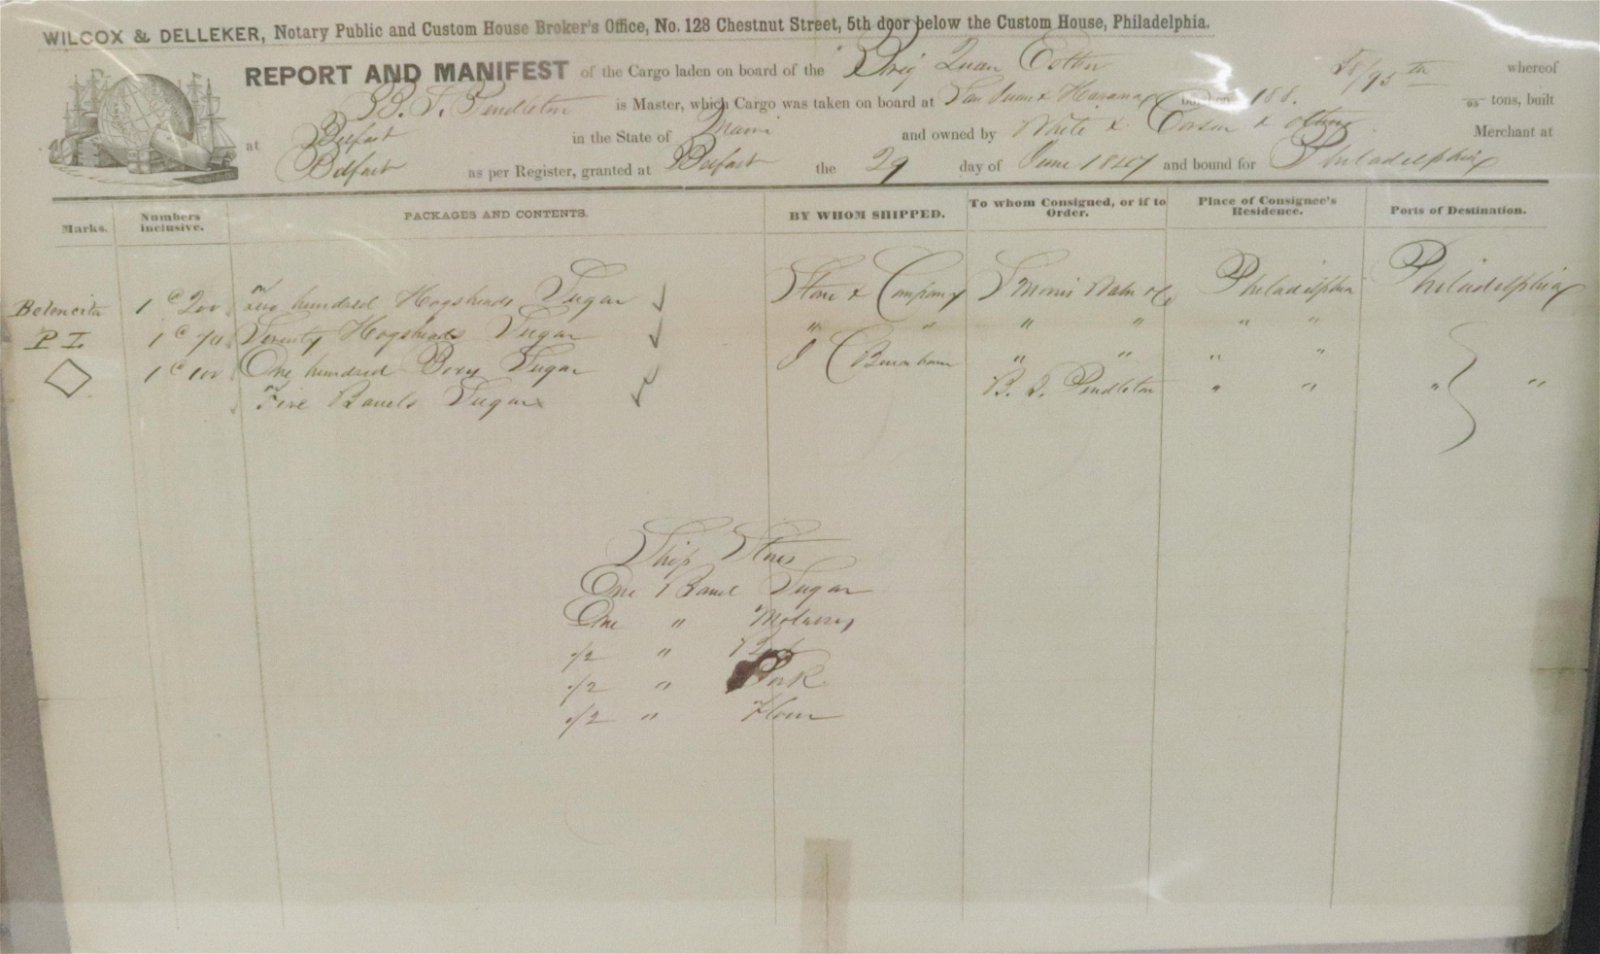 ANTIQUE SHIPPING MANIFEST